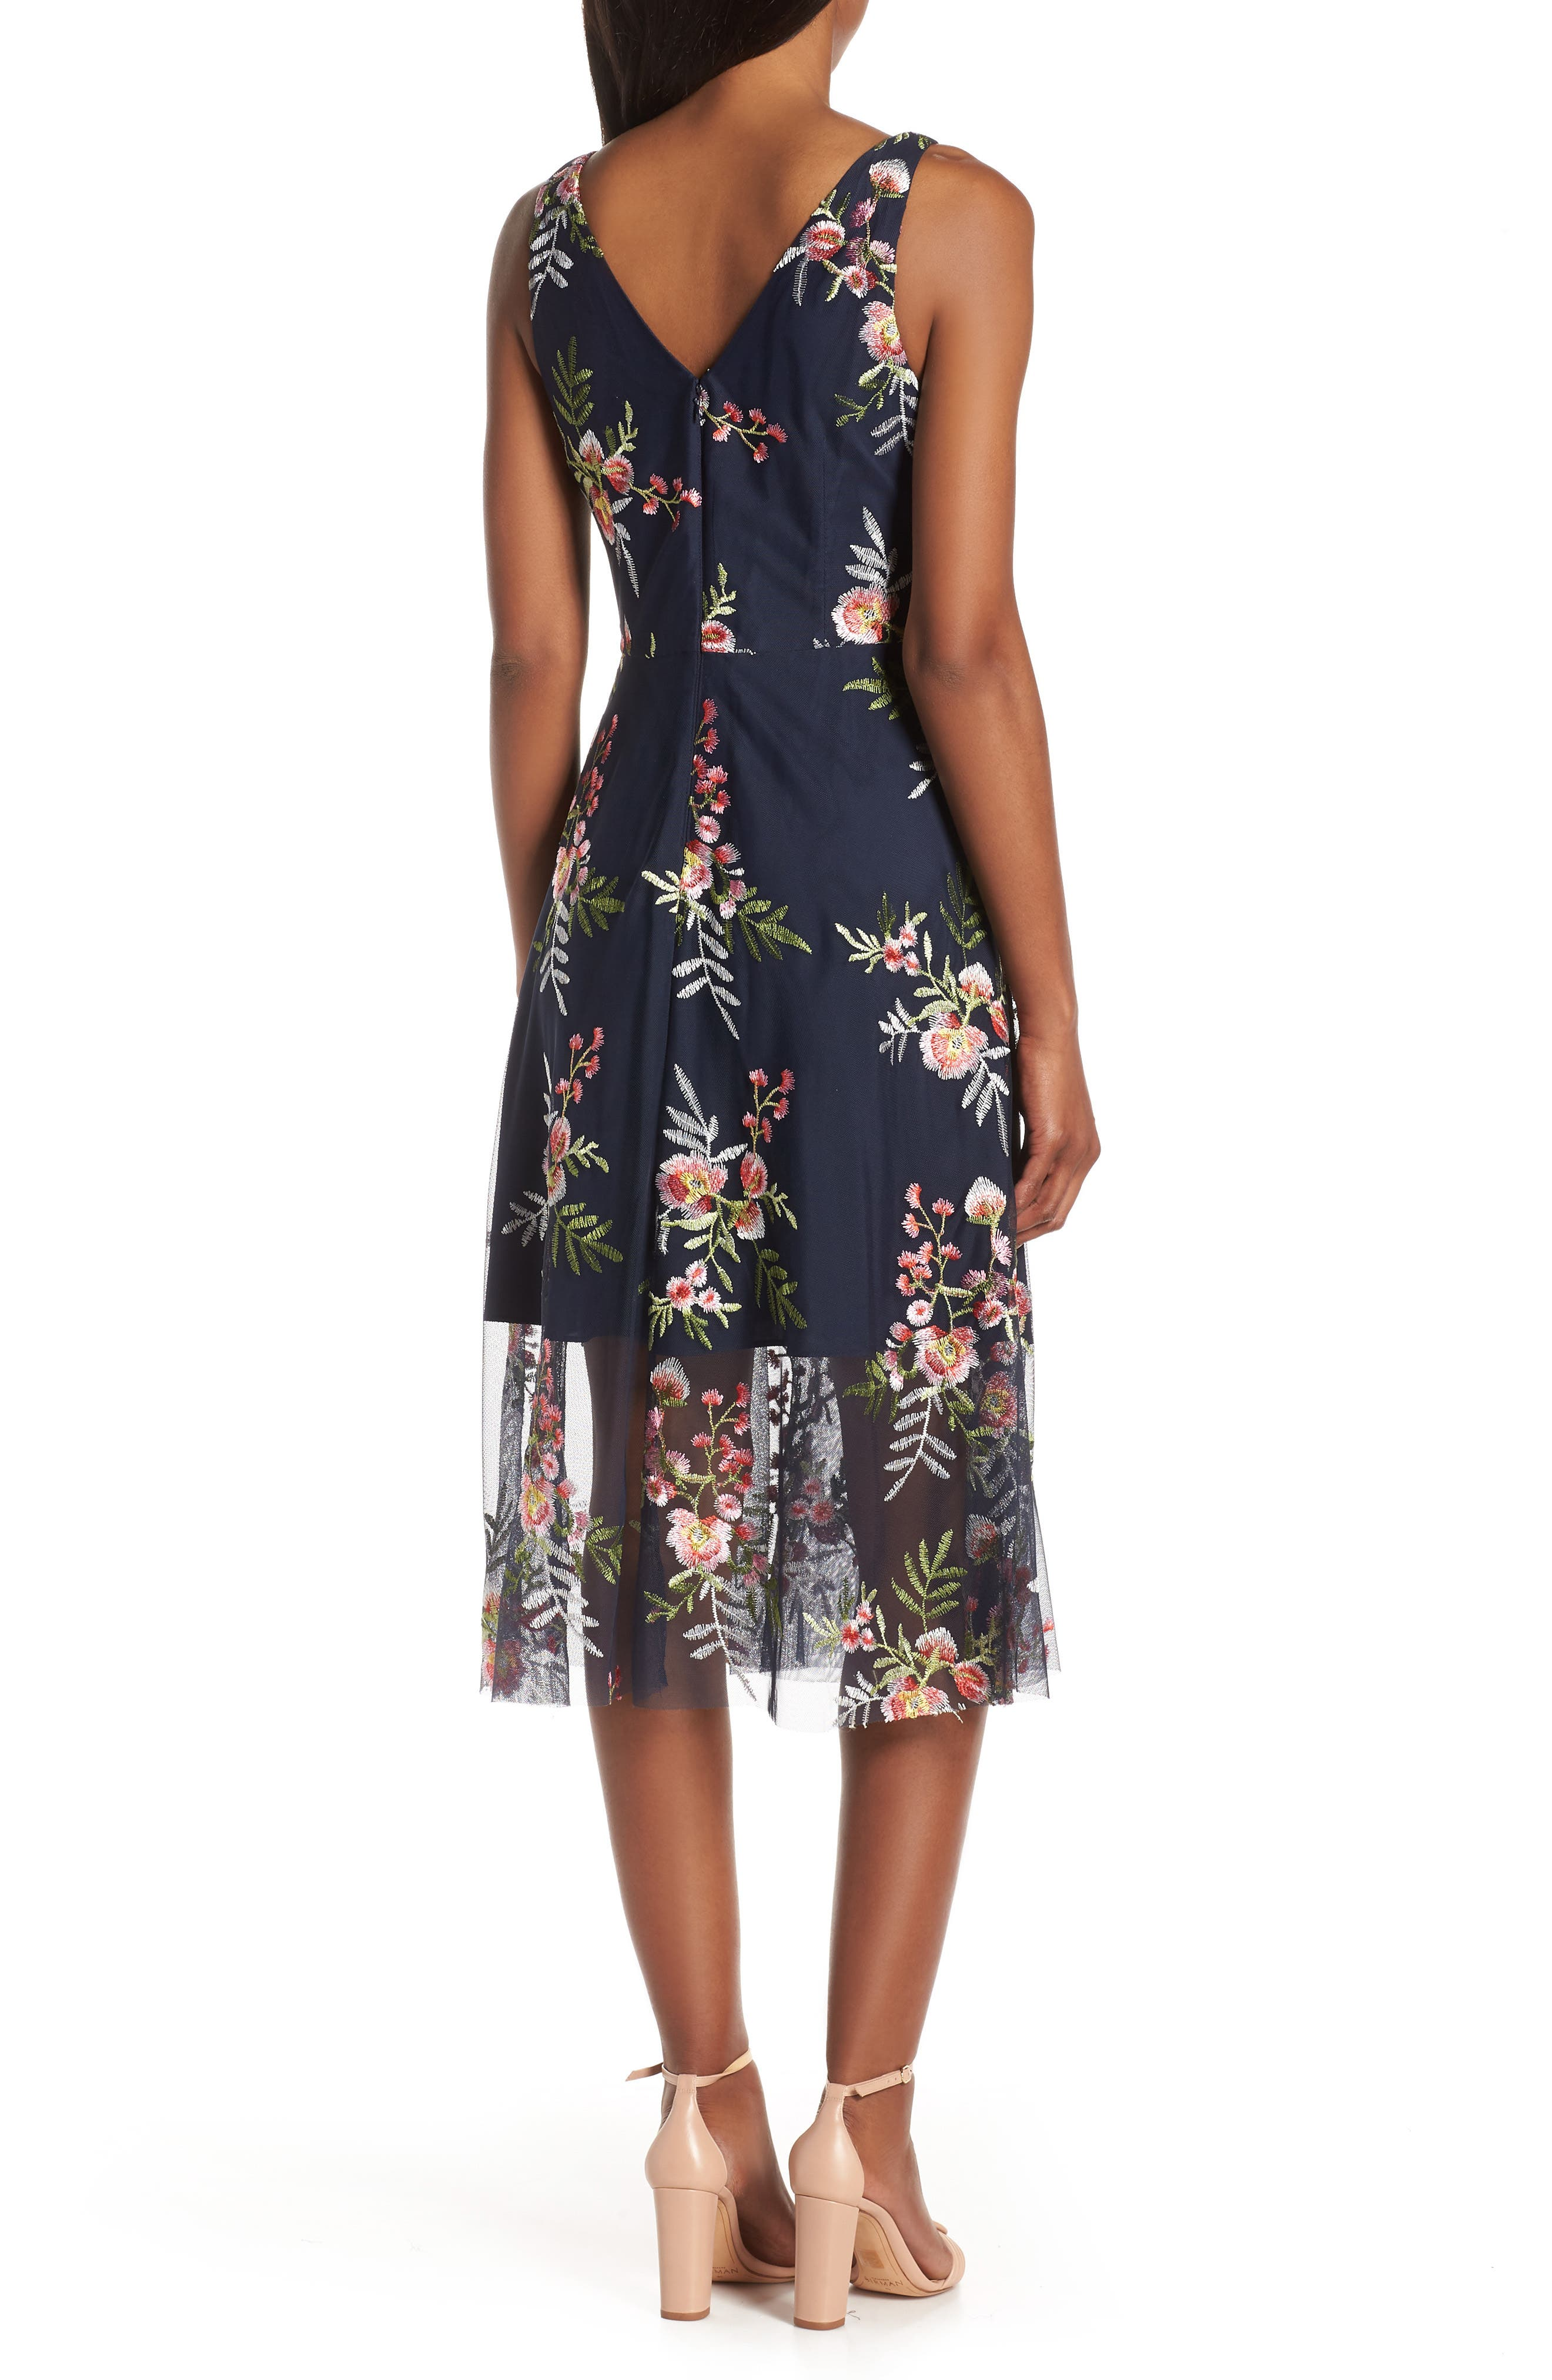 VINCE CAMUTO, Floral Embroidered Mesh Midi Dress, Alternate thumbnail 4, color, NAVY/ MULTI